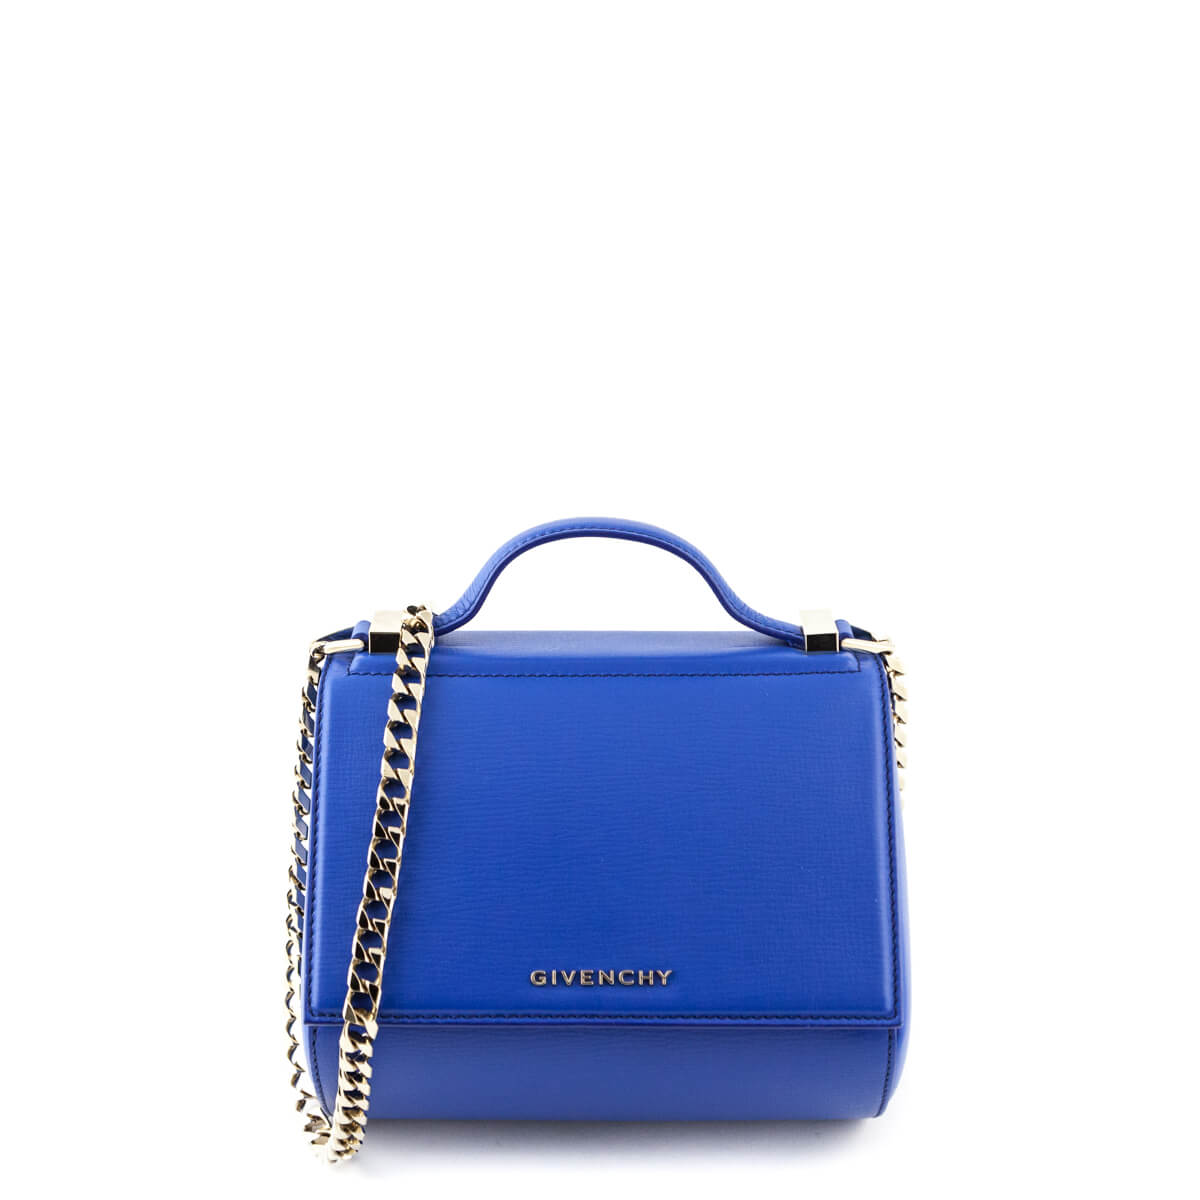 6a0821022128 Givenchy Indigo Blue Calfskin Mini Pandora Box Shoulder Bag - LOVE that BAG  - Preowned Authentic ...